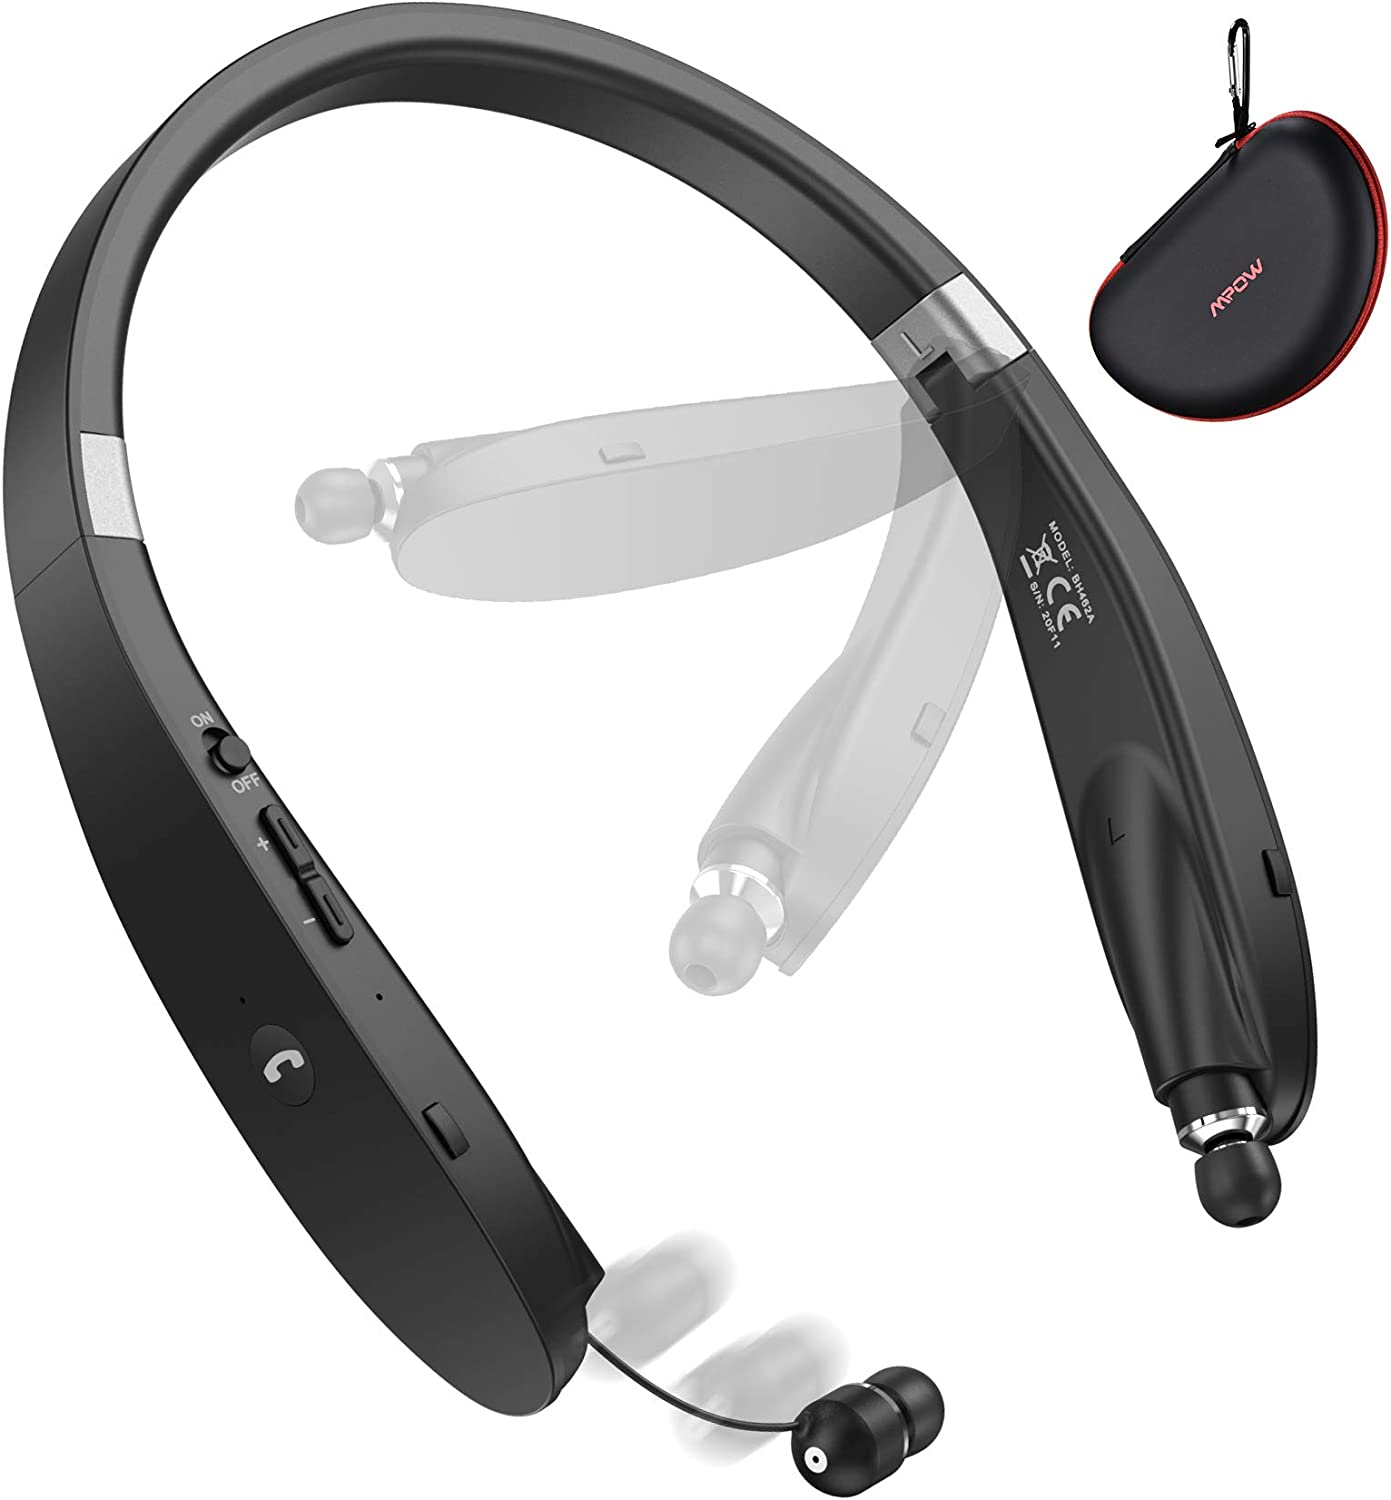 Bluetooth Headphones, Mpow Wings Foldable Wireless Neckband Headset W/Retractable Earbuds, V5.0 Bluetooth Headset Neckband, 20H Playtime, cVc6.0 Noise Cancelling Mic, Carry Case for Home Office,Black